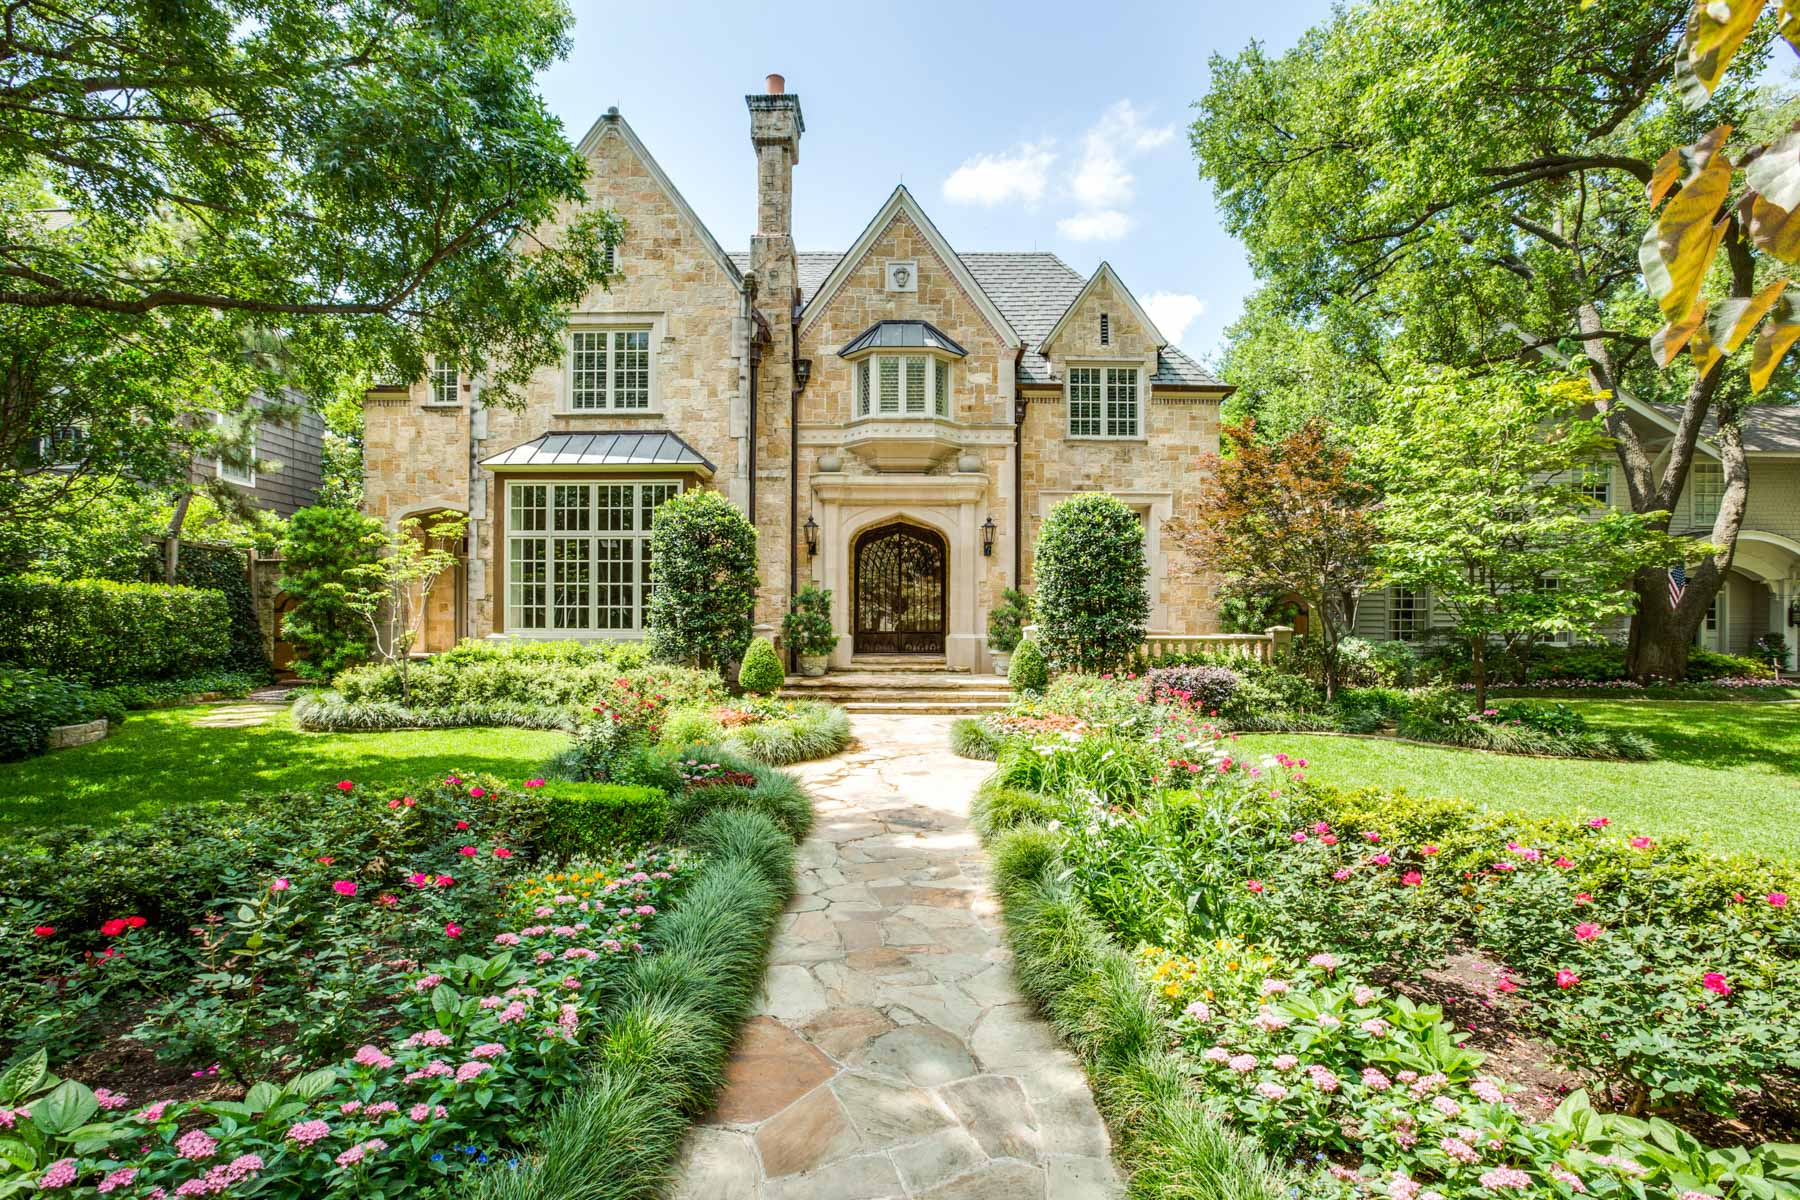 Maison unifamiliale pour l Vente à Highland Park English Manor 3513 Drexel Dr Dallas, Texas, 75205 États-Unis